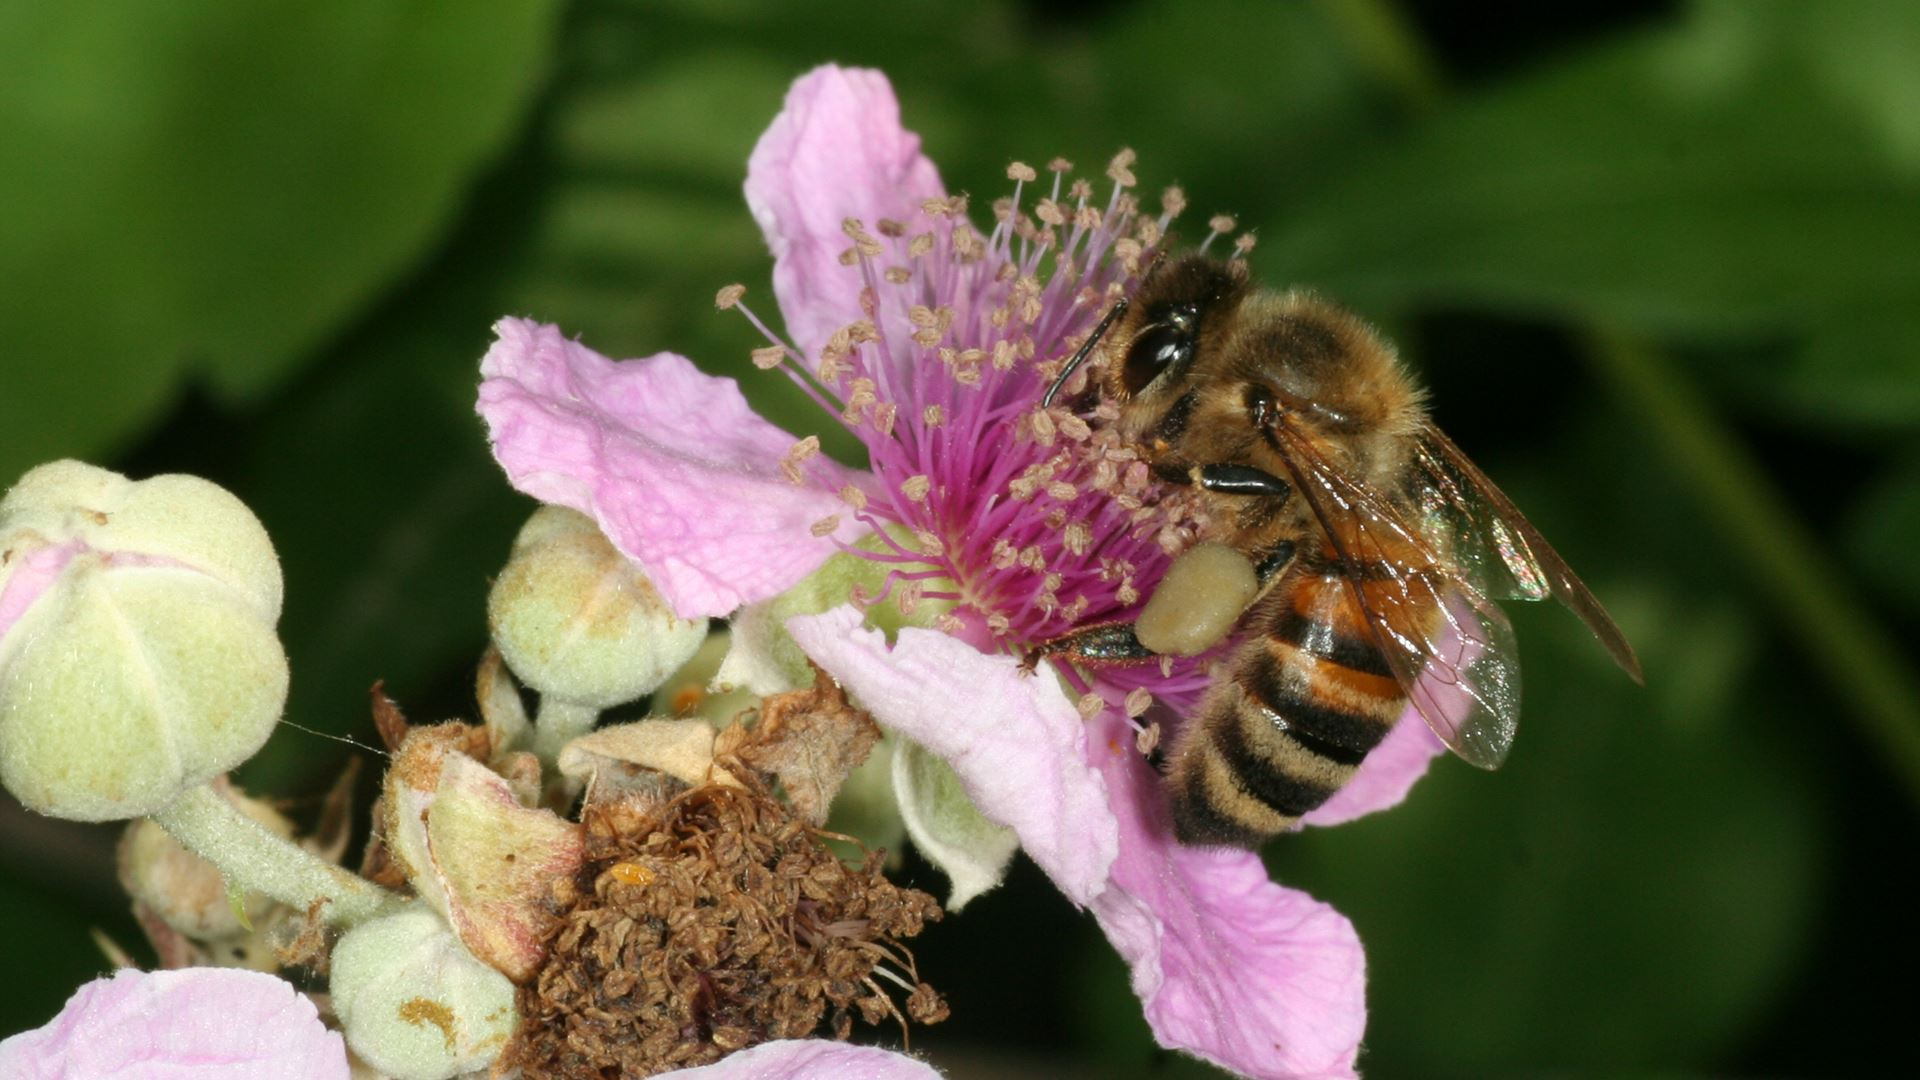 May 20, World Bee Day: Since 2016 Lamborghini has worked with bees in an environmental biomonitoring project - Image 7